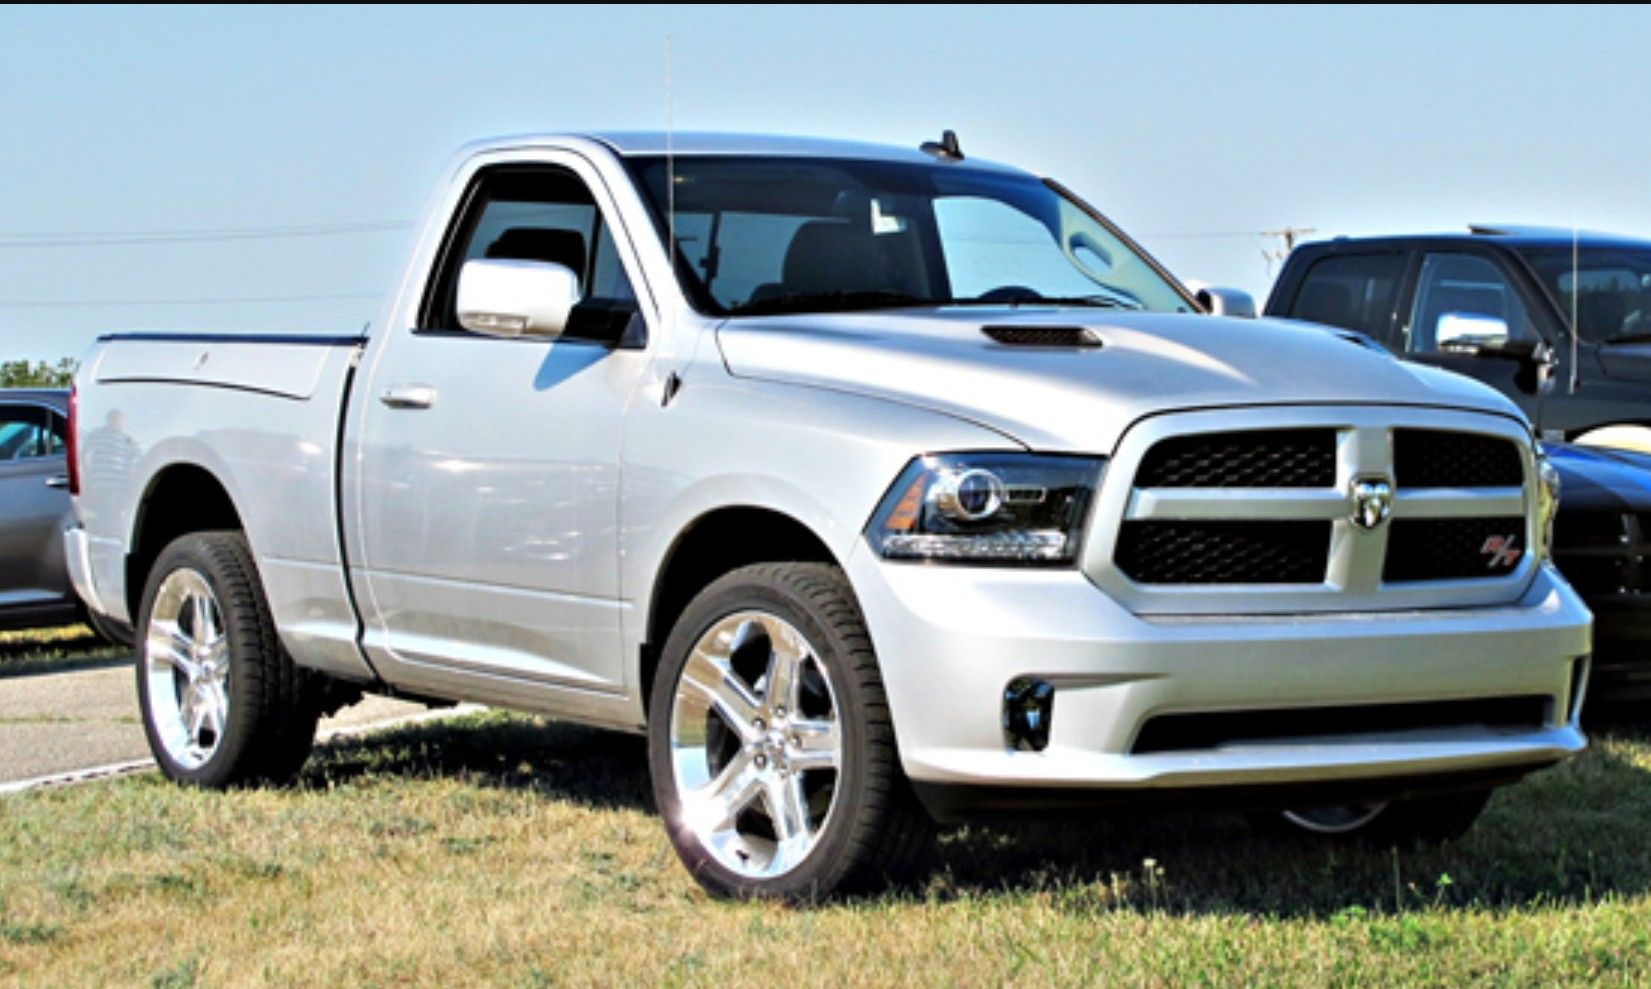 Pin by Breck Ritchie on ram 1500 Ram trucks, Trucks, Suv